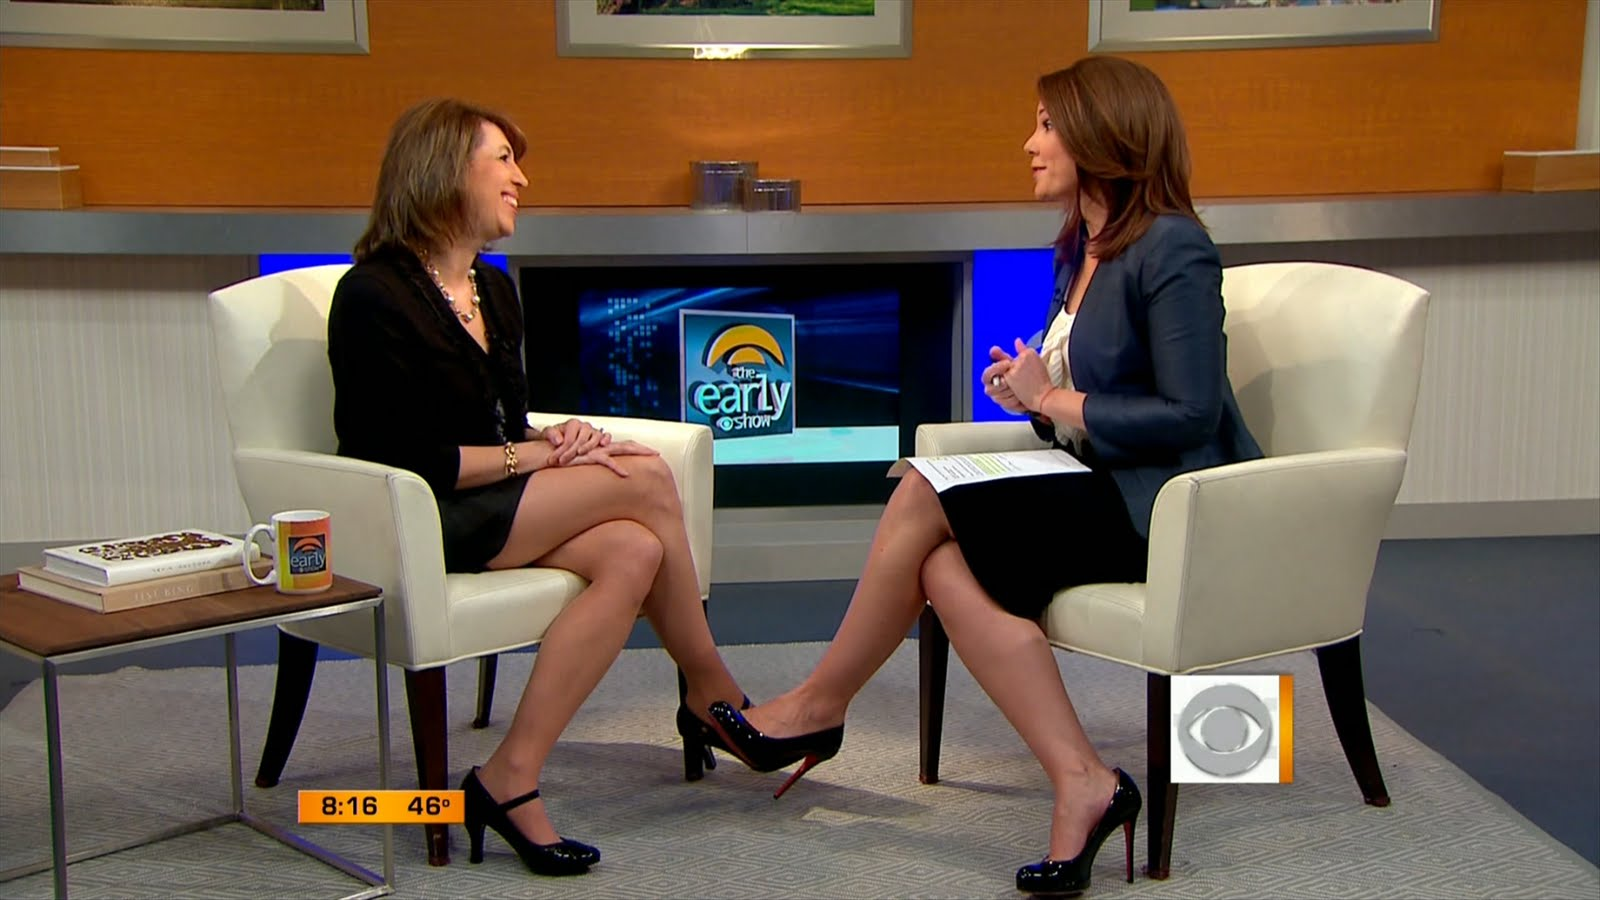 Erica Hill's Feet http://www.legcross.com/2011/04/erica-hill-on-cbs-early-show.html